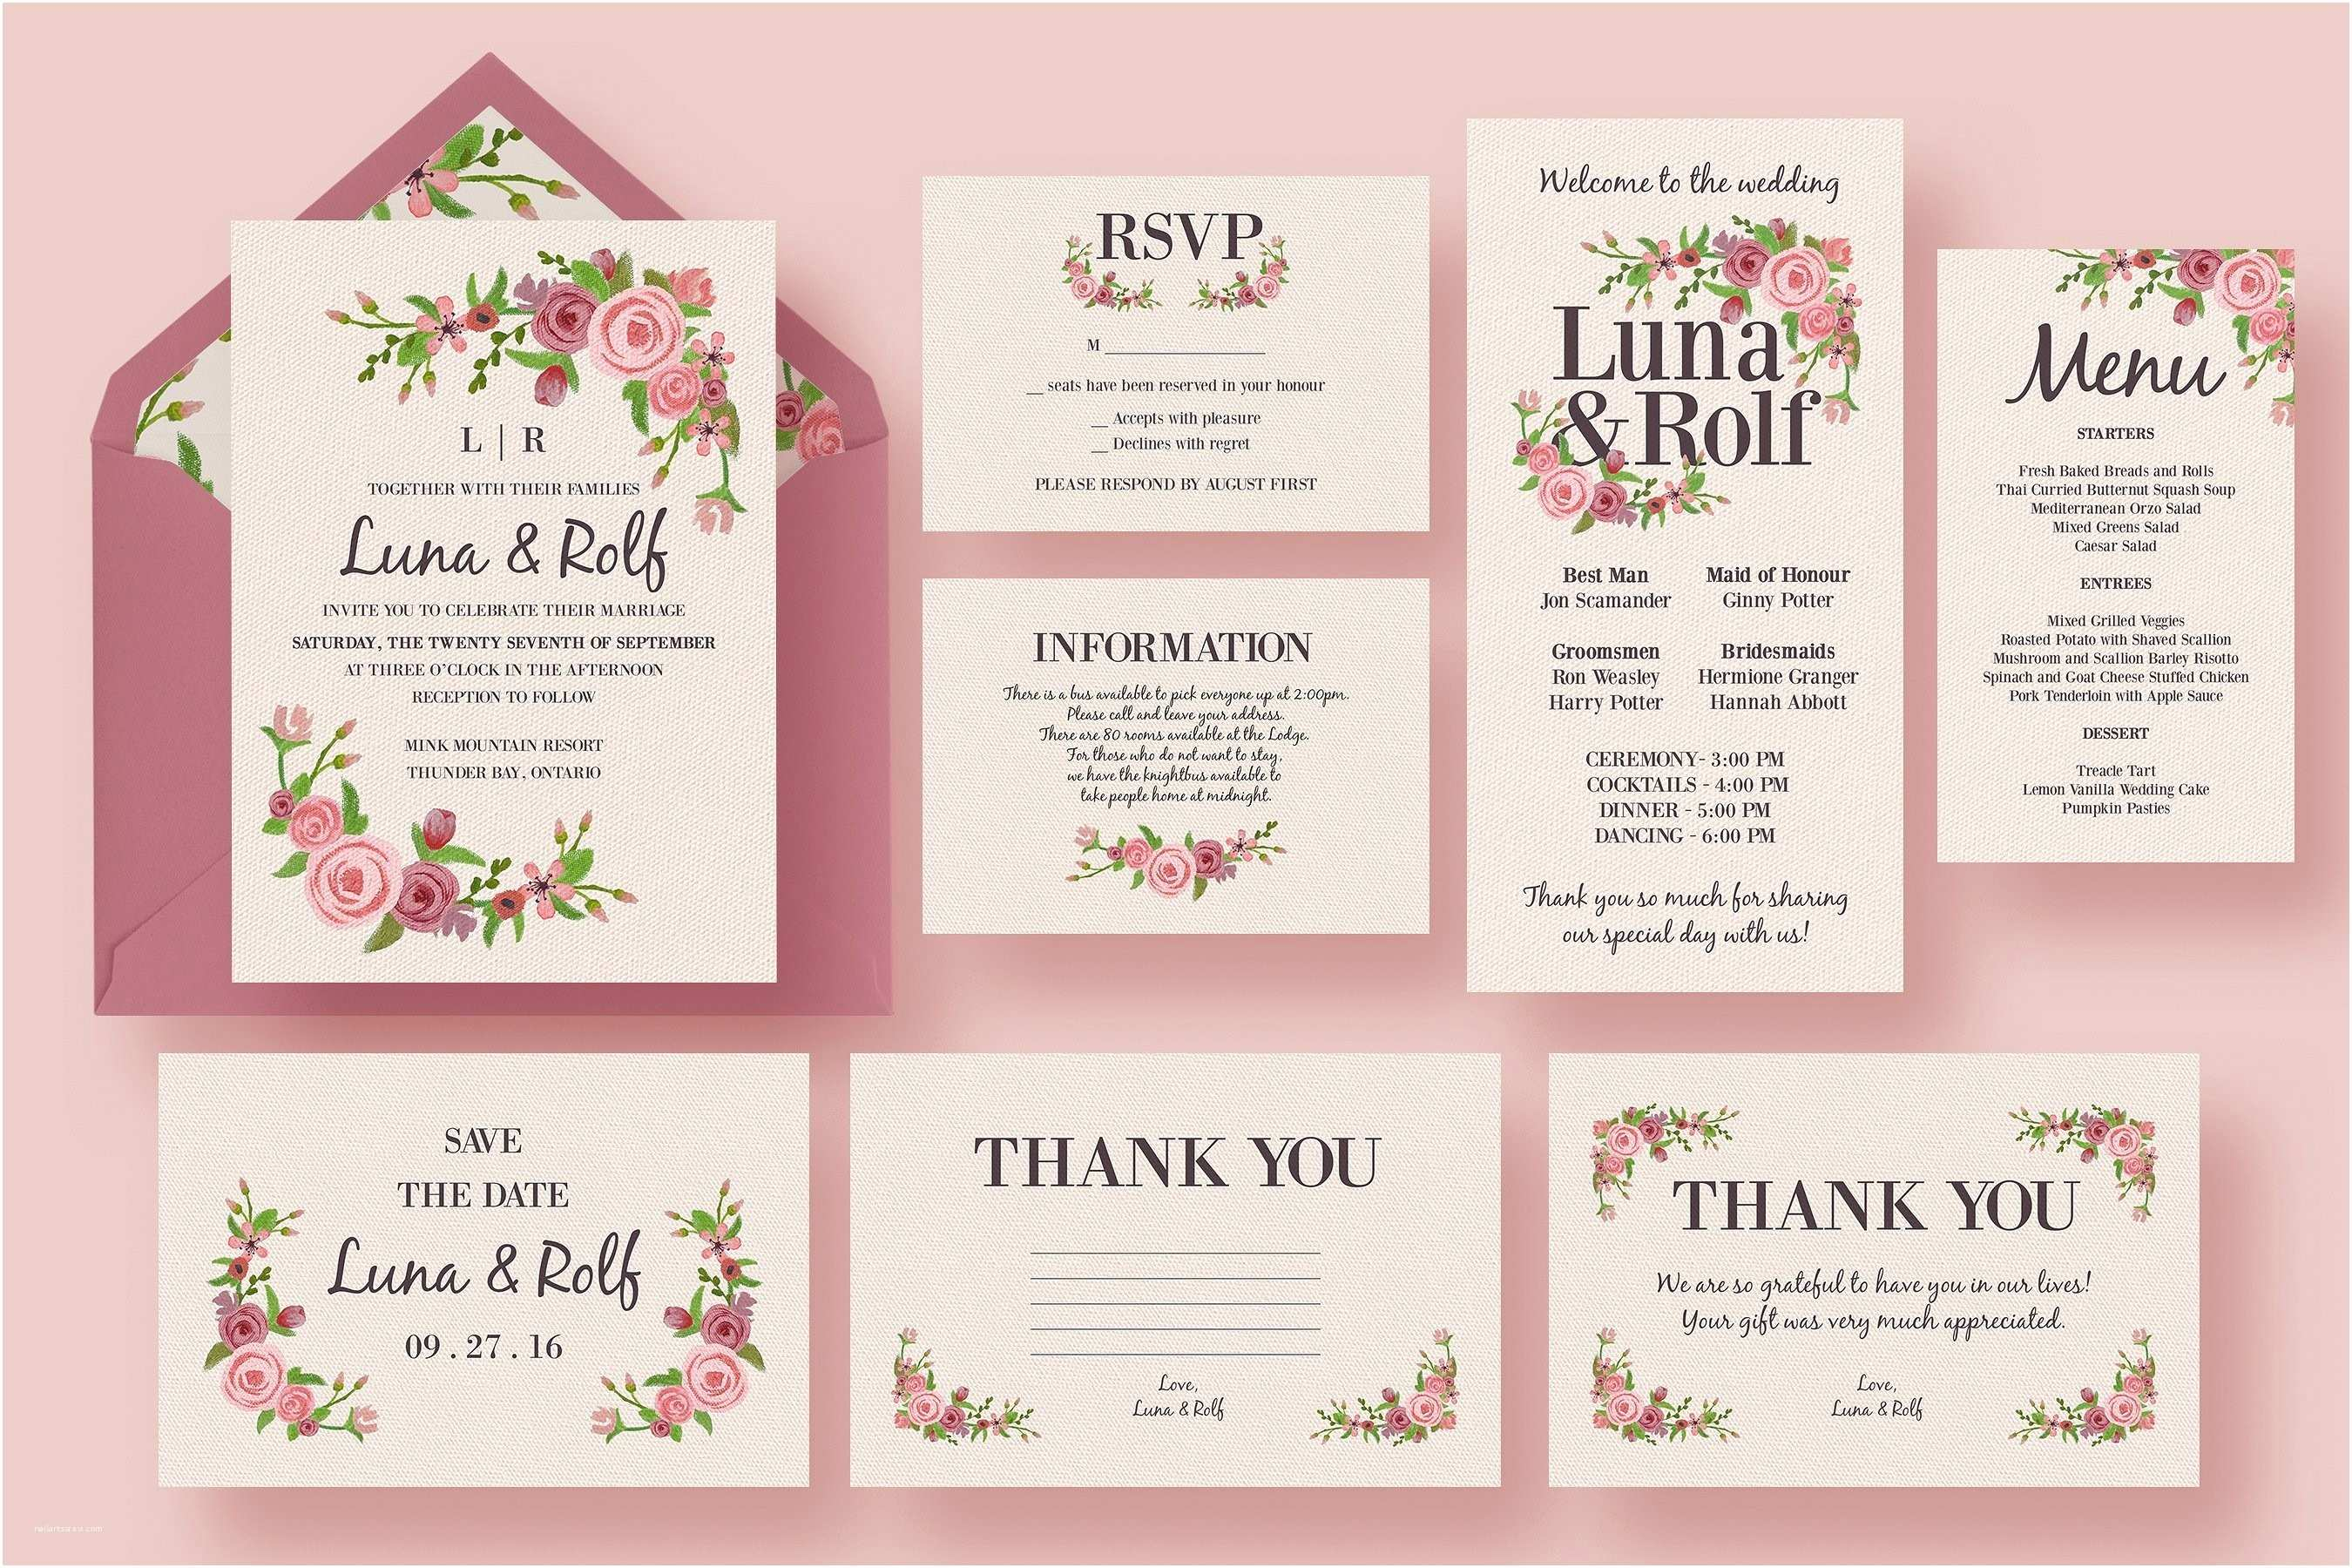 Filipino Wedding Invitation Sample Sample Wedding Invitation In the Philippines New